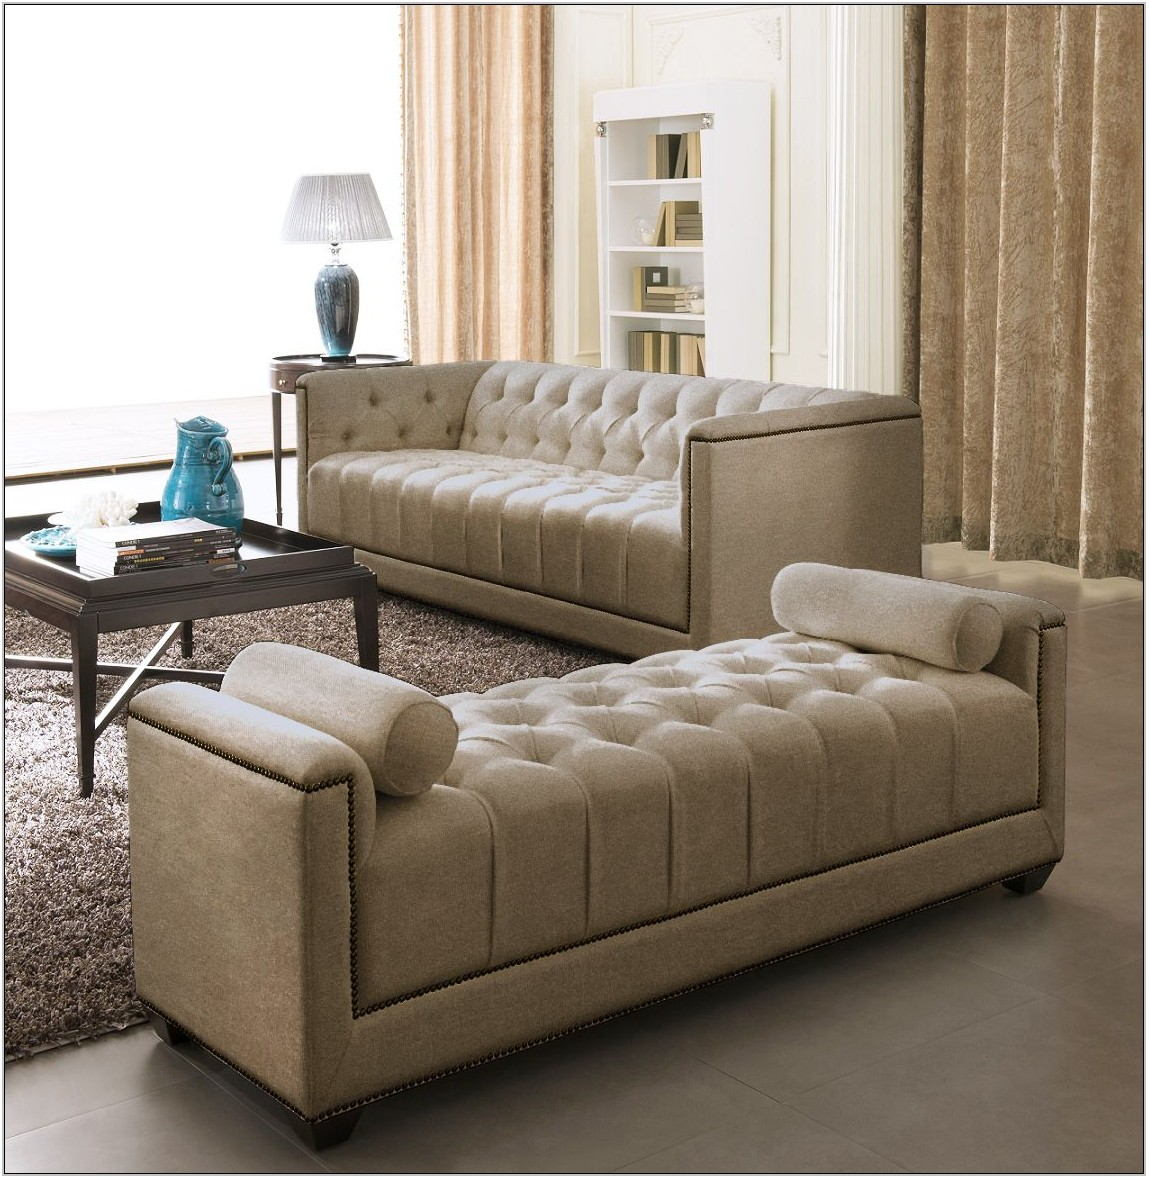 Design Living Room Sofa